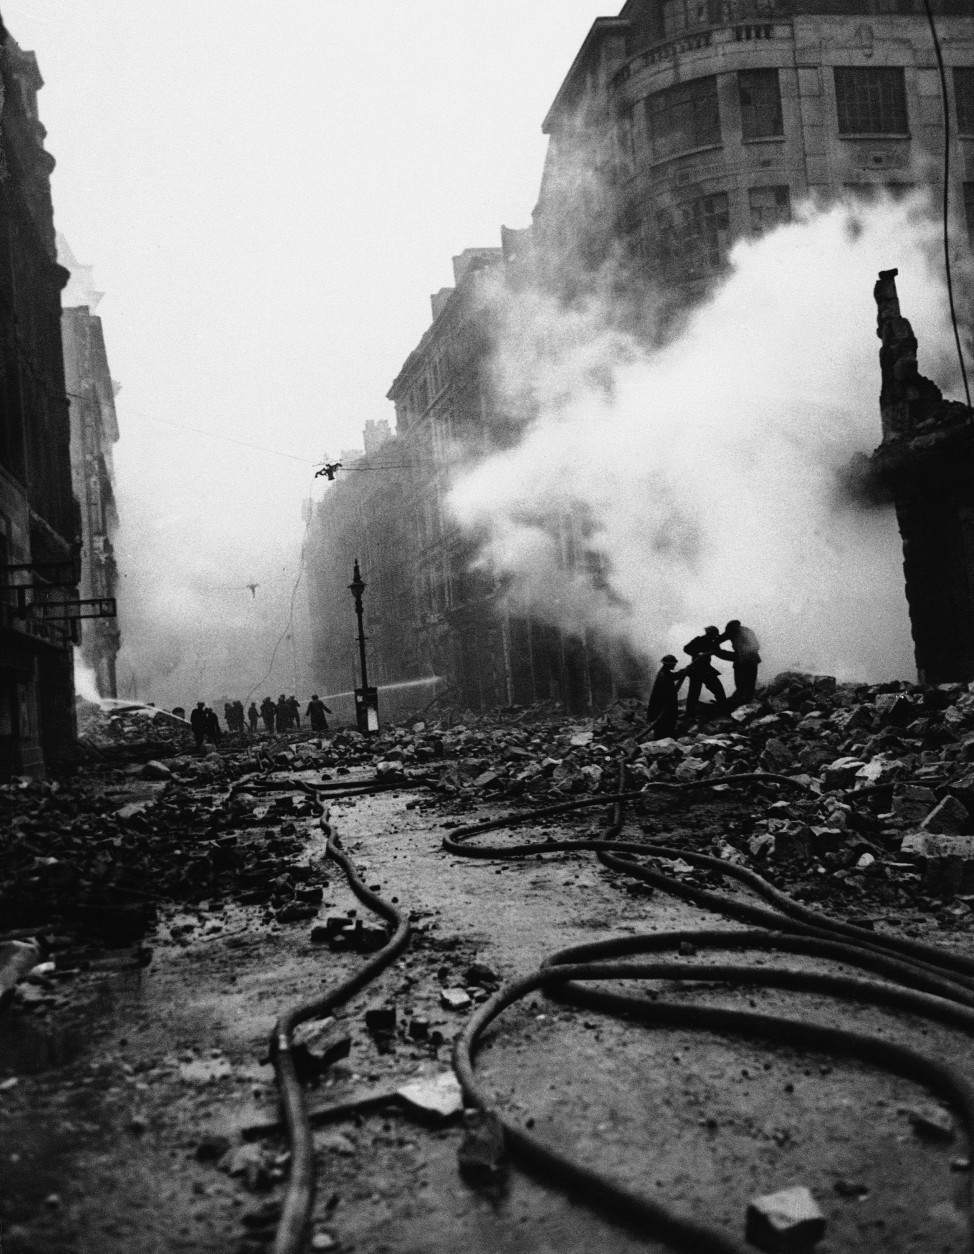 "Newgate Street, in the old section of London, is cluttered with firehoses and debris after the firebombing ""blitz"" raid by the Nazis, Dec. 29, 1940. (AP Photo)"